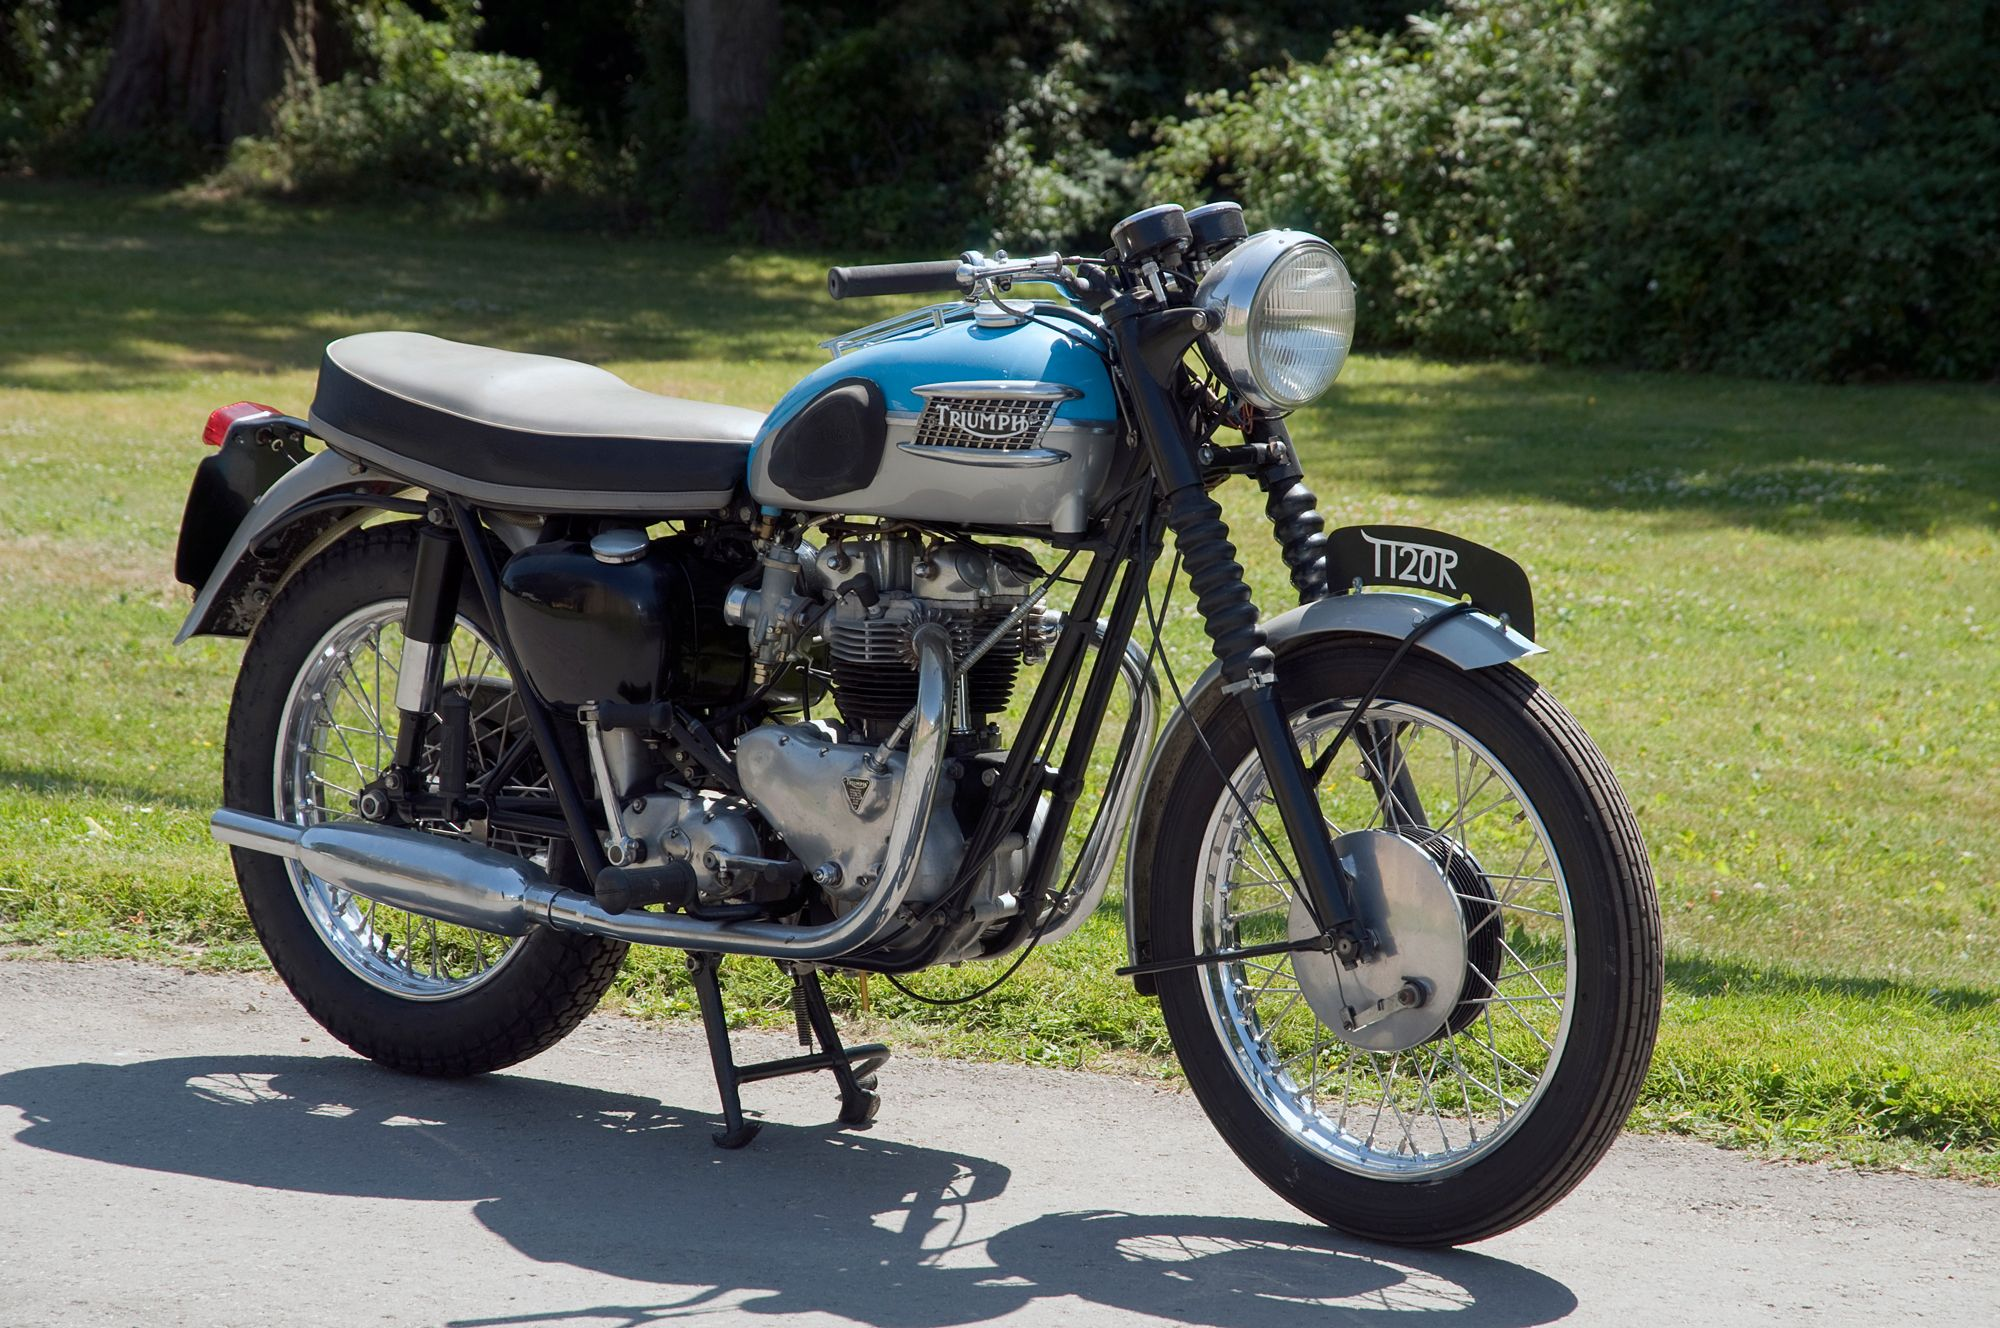 5 Vintage Bikes That Are As Fun To Ride They Stylish 1960s Honda Motorcycles